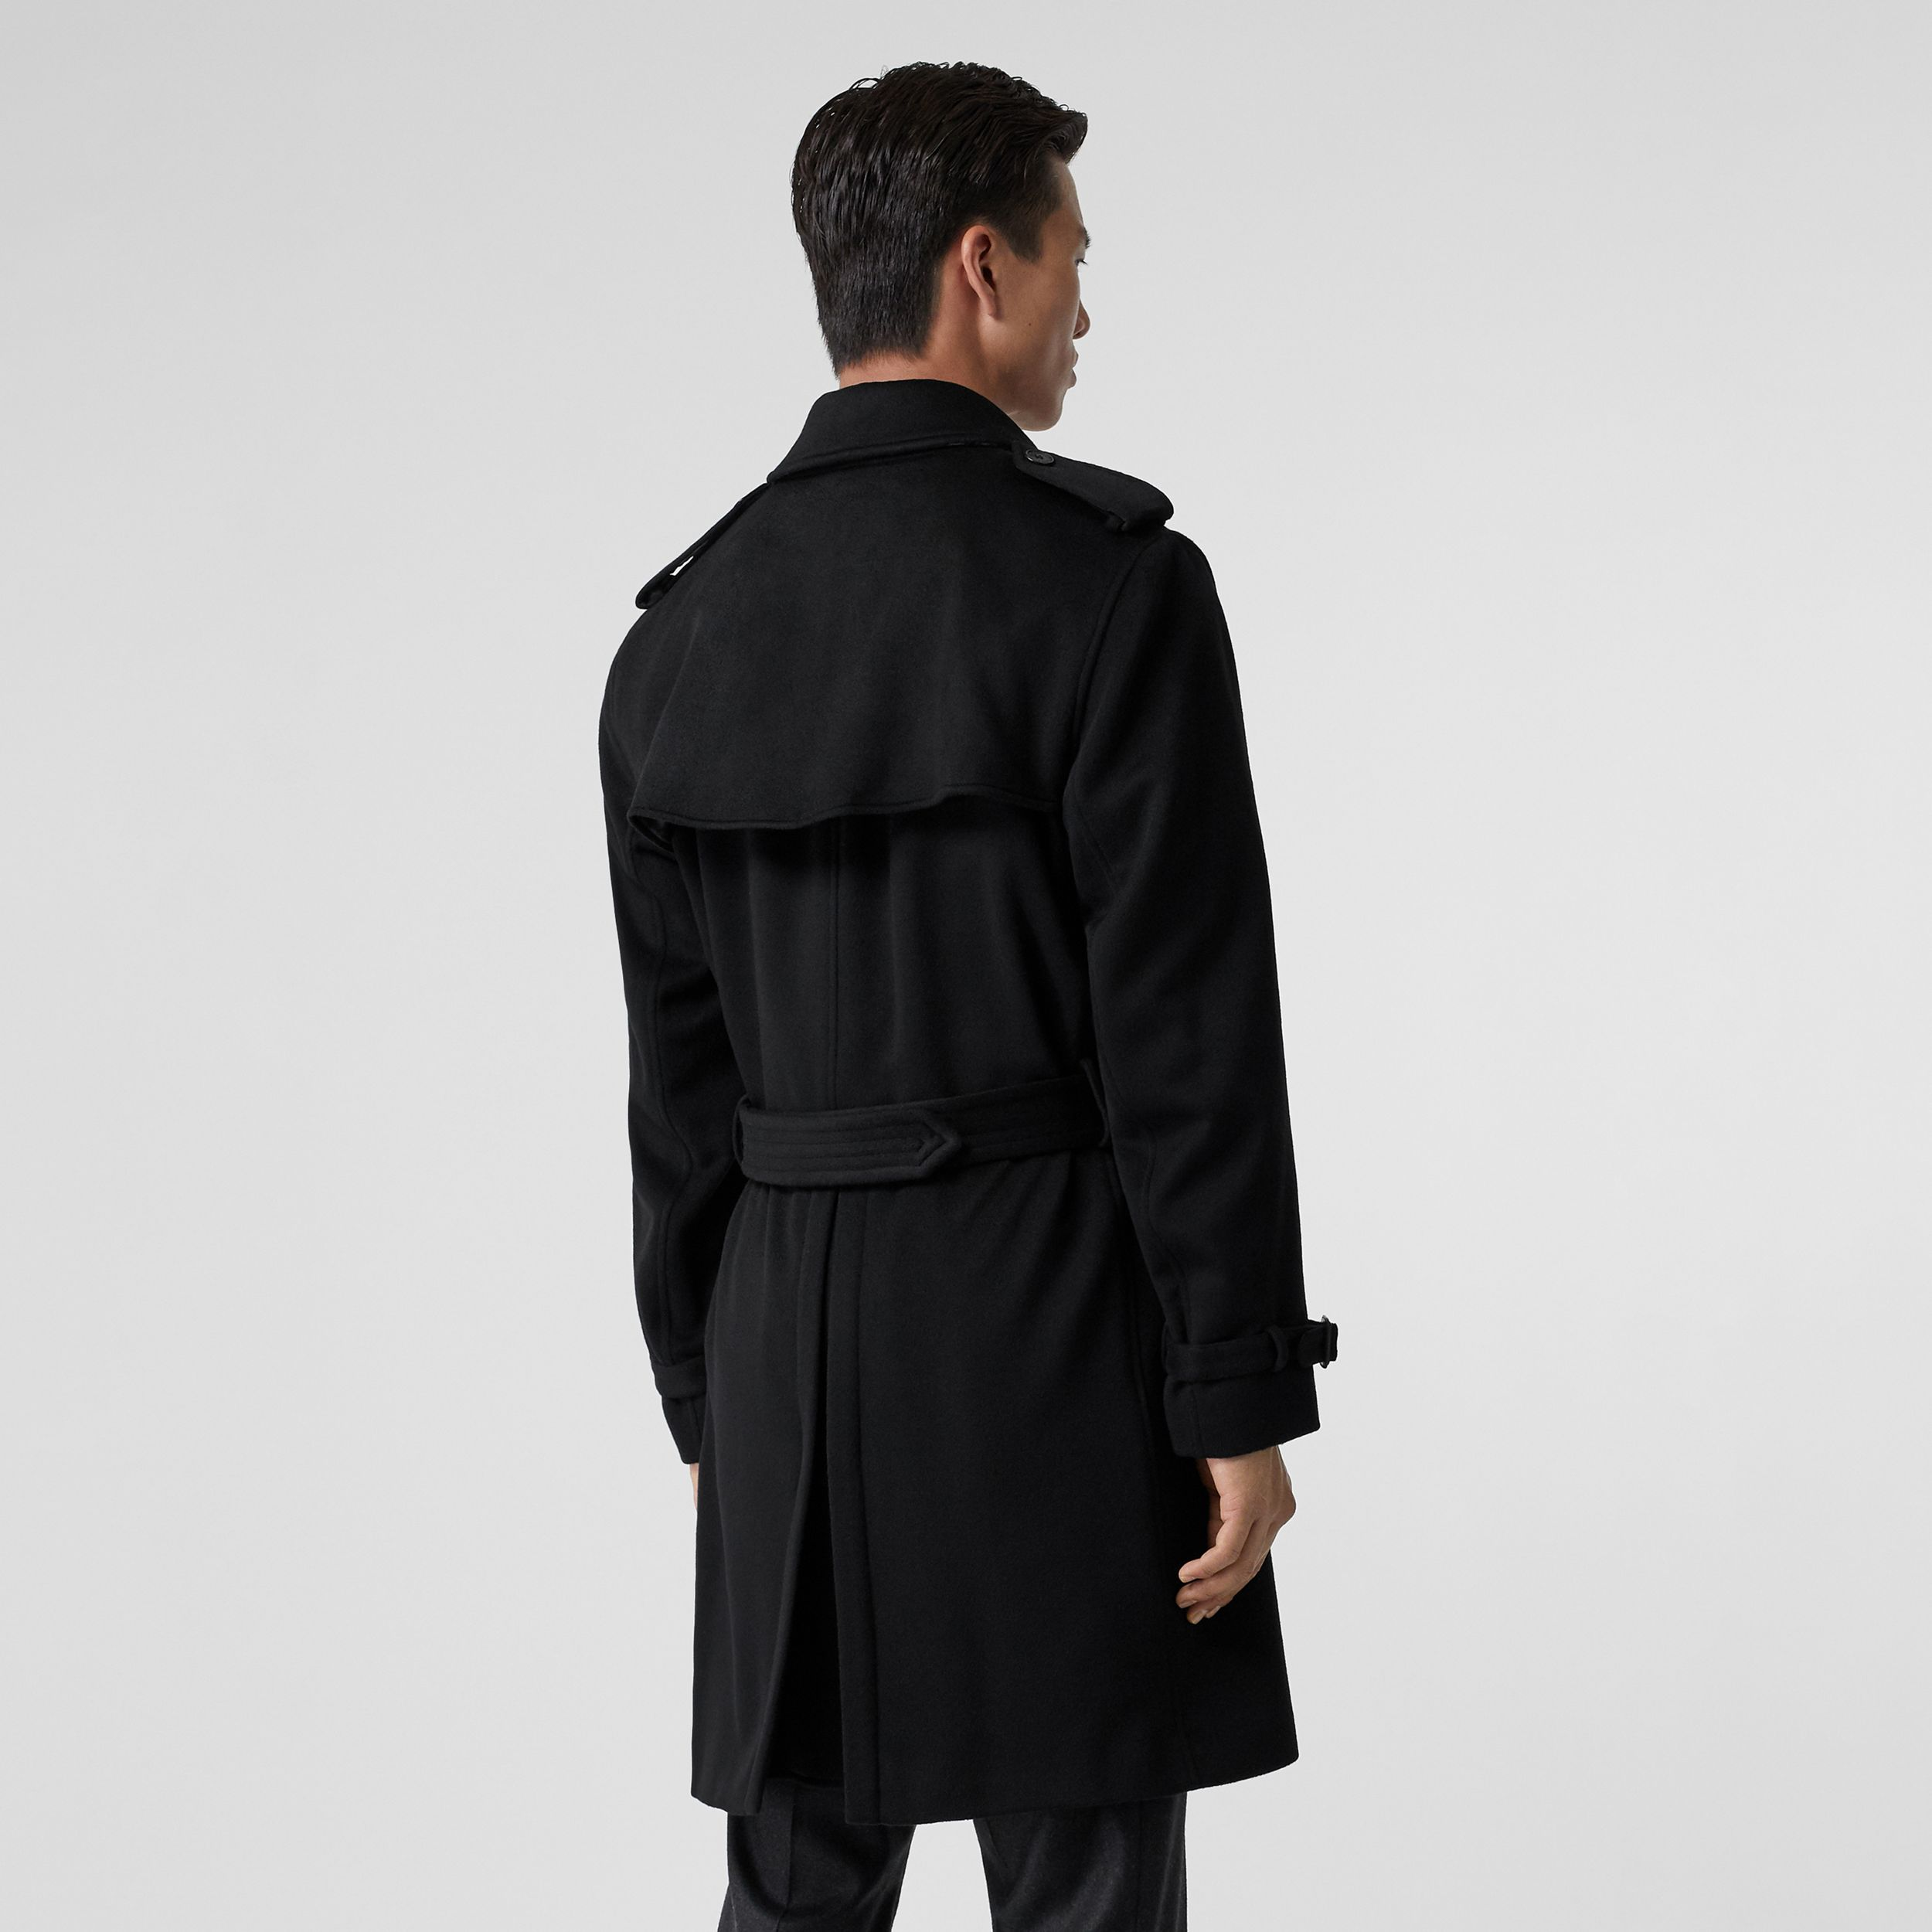 Cashmere Trench Coat in Black - Men | Burberry - 3